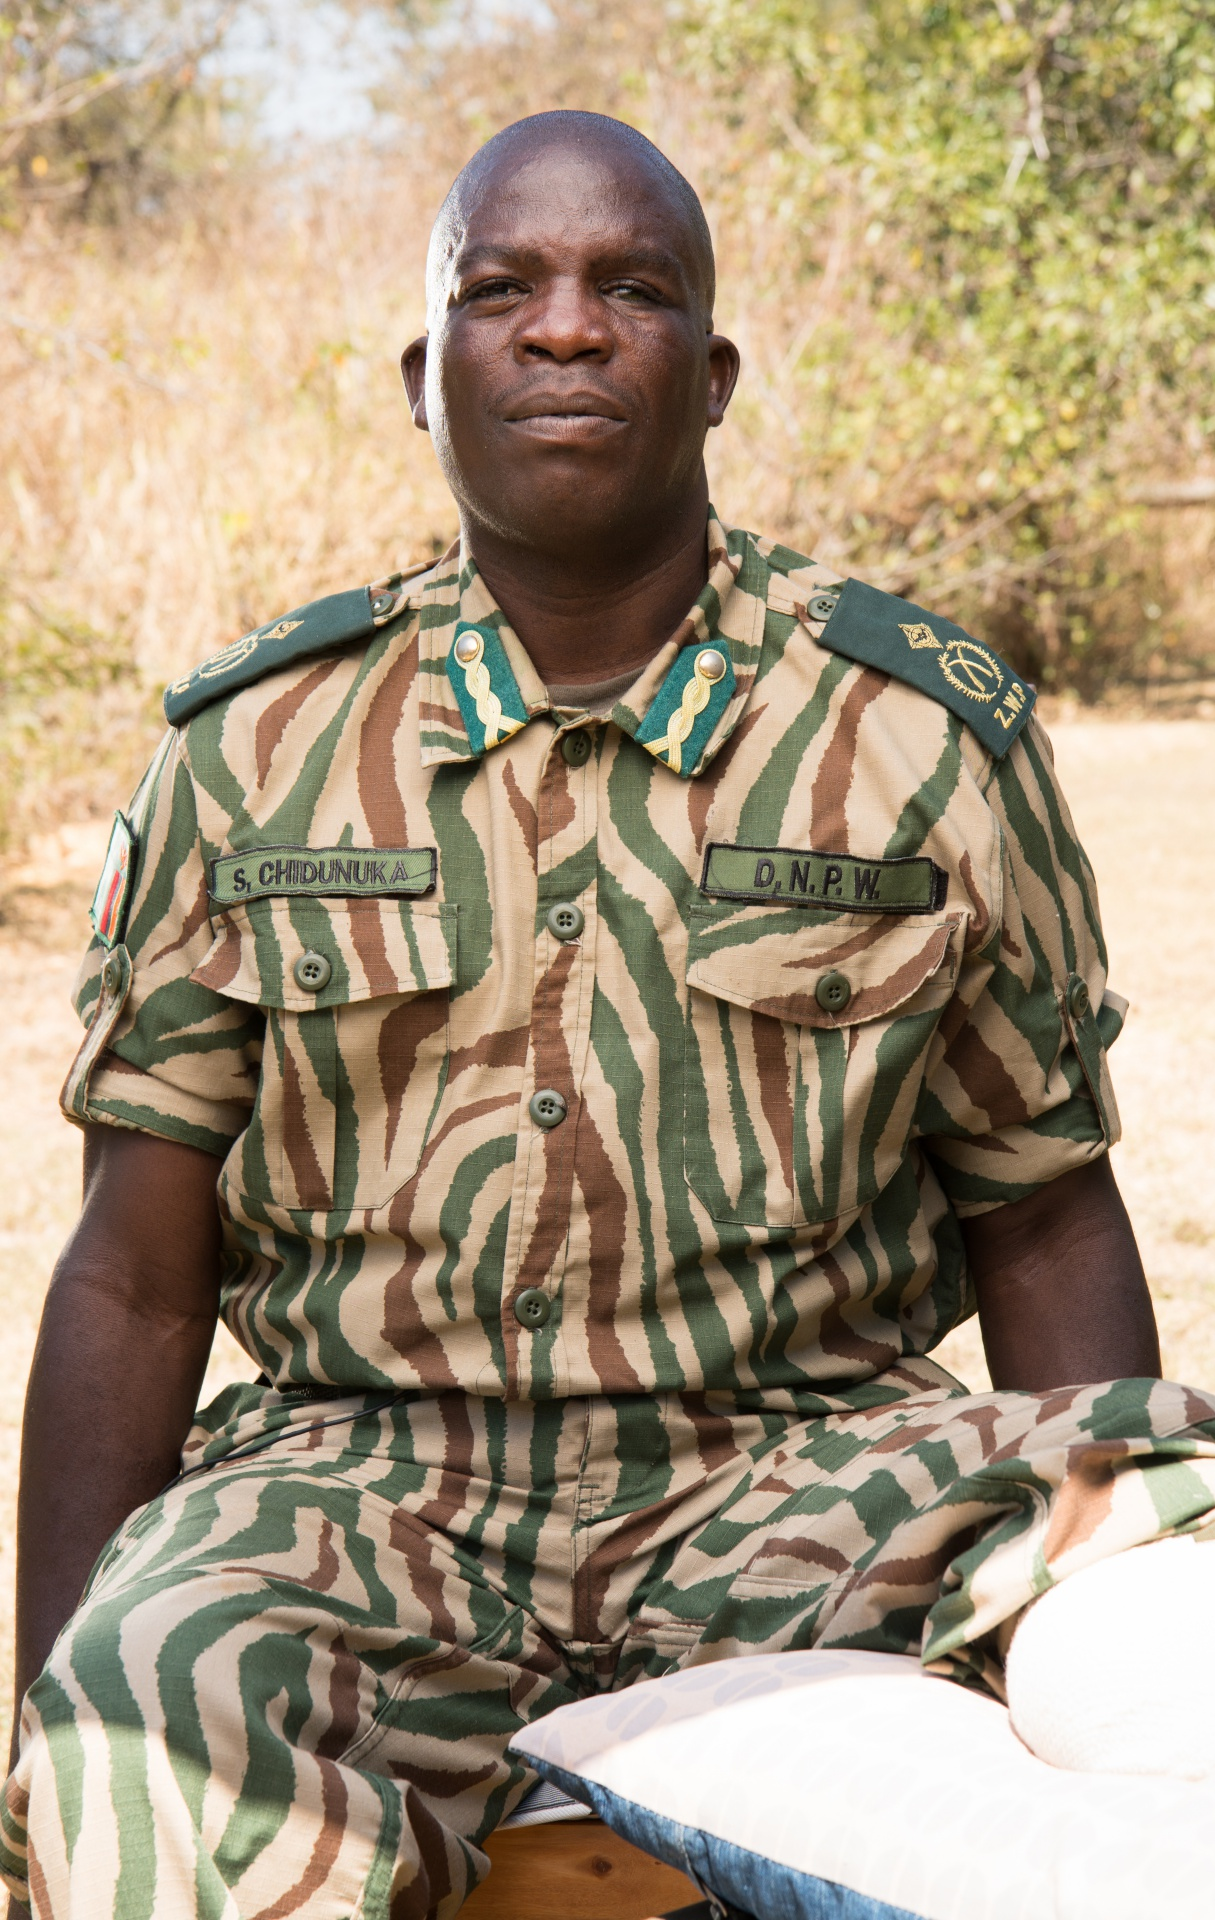 Solomon Chidunuka | 2017 Tusk Award Wildlife Ranger, Winner